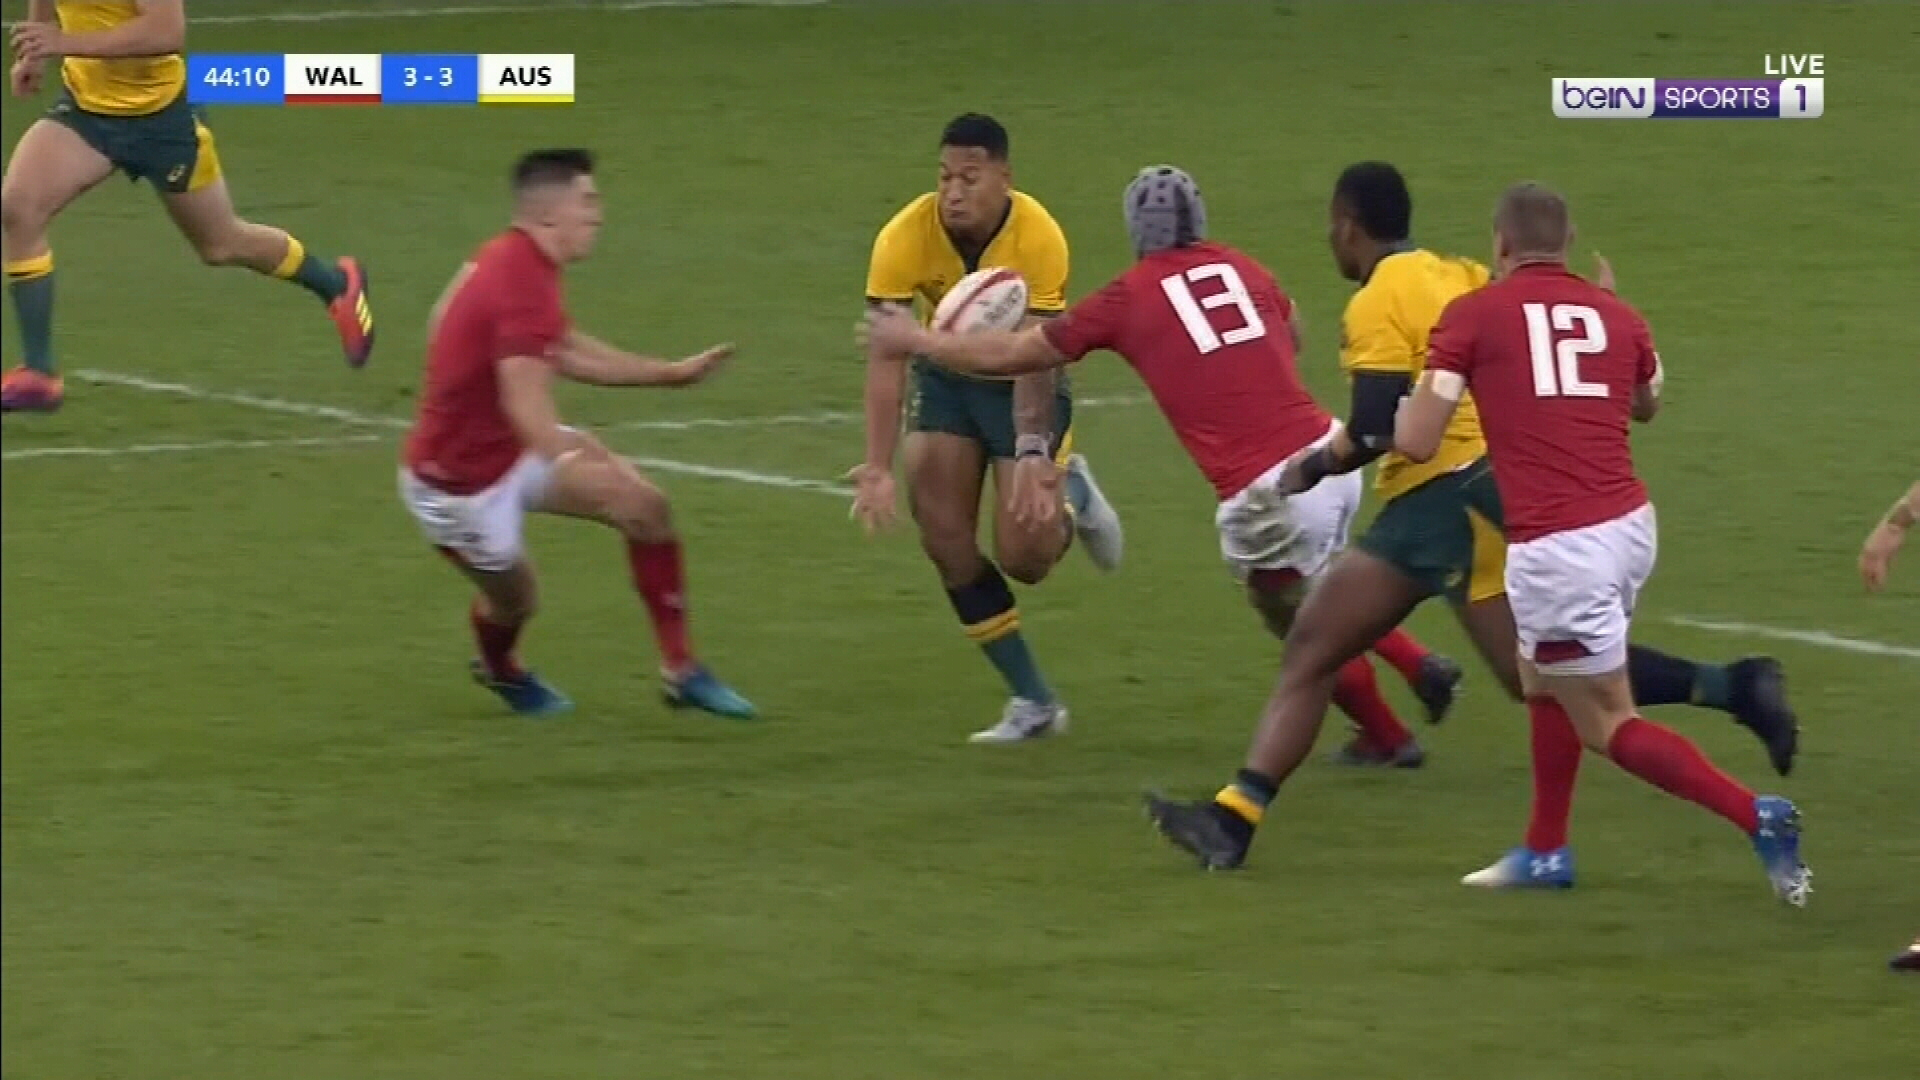 Wallabies beaten by Wales